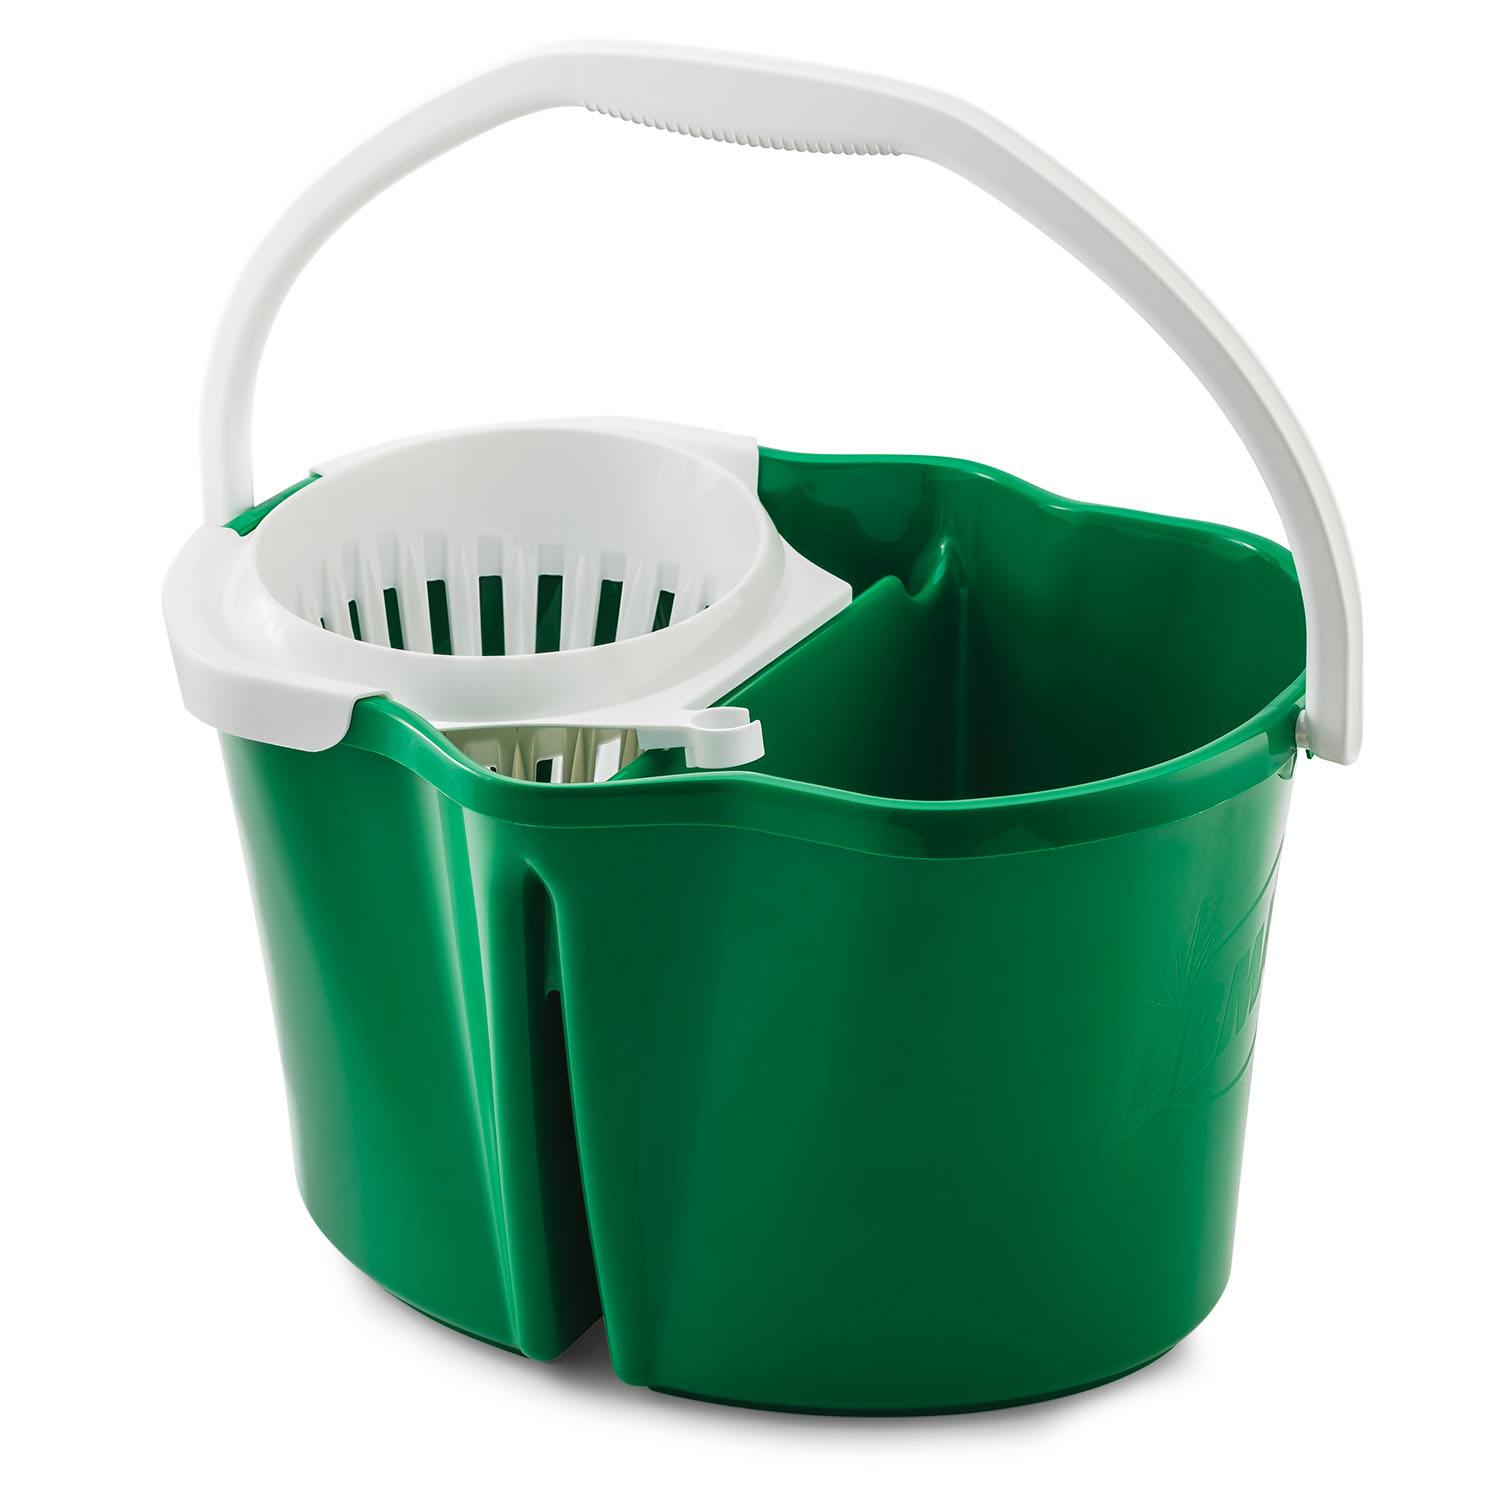 Libman Polypropylene Mop Bucket with Wringer, Green & White